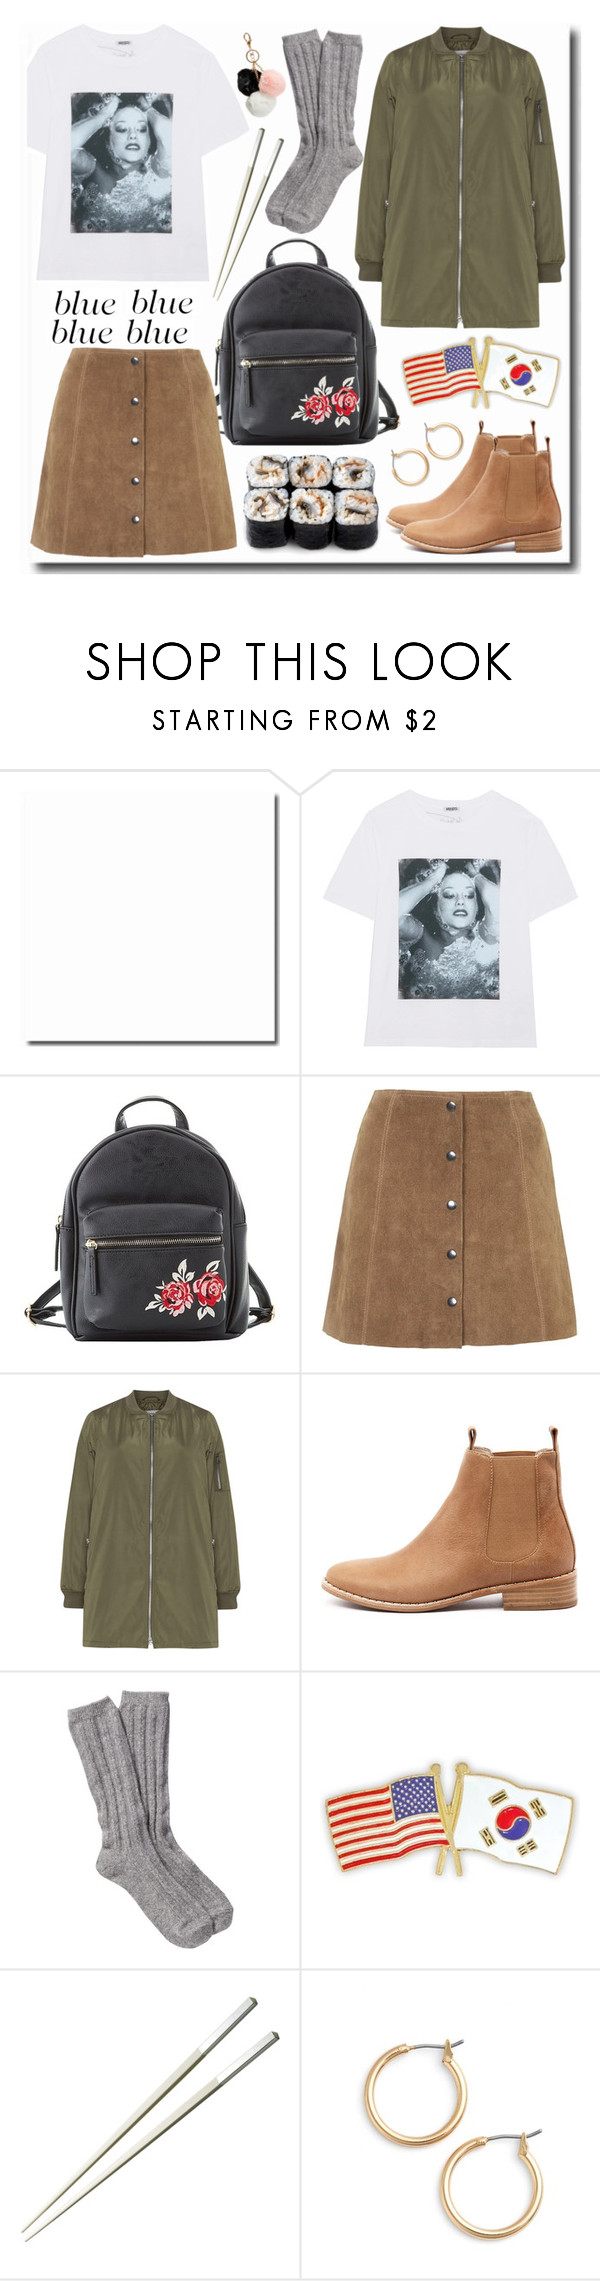 """""""The Coast"""" by thisis2003 ❤ liked on Polyvore featuring Kenzo, Charlotte Russe, Topshop, Zizzi, Mollini, UGG, Christofle, Nordstrom and GUESS"""